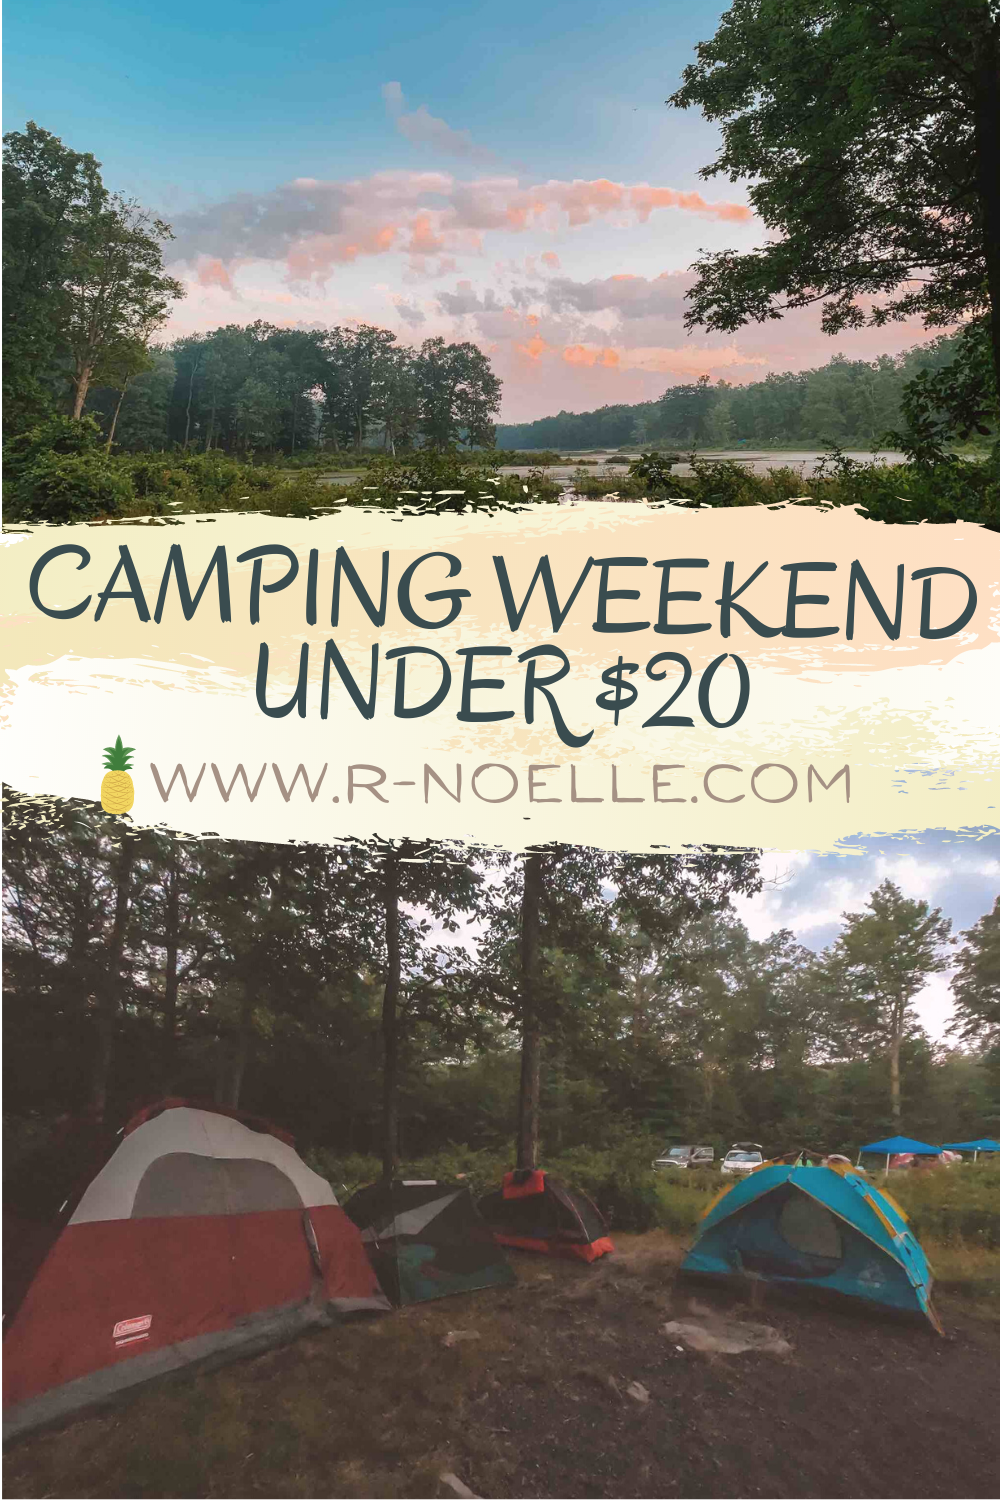 Camping can range in prices. Research campsites in the area you're planning to stay. At High Point State Park in New Jersey there is a campsite that give your gorgeous views and large campsites to make the most of your camping weekend. Also not a massive bang for your buck.